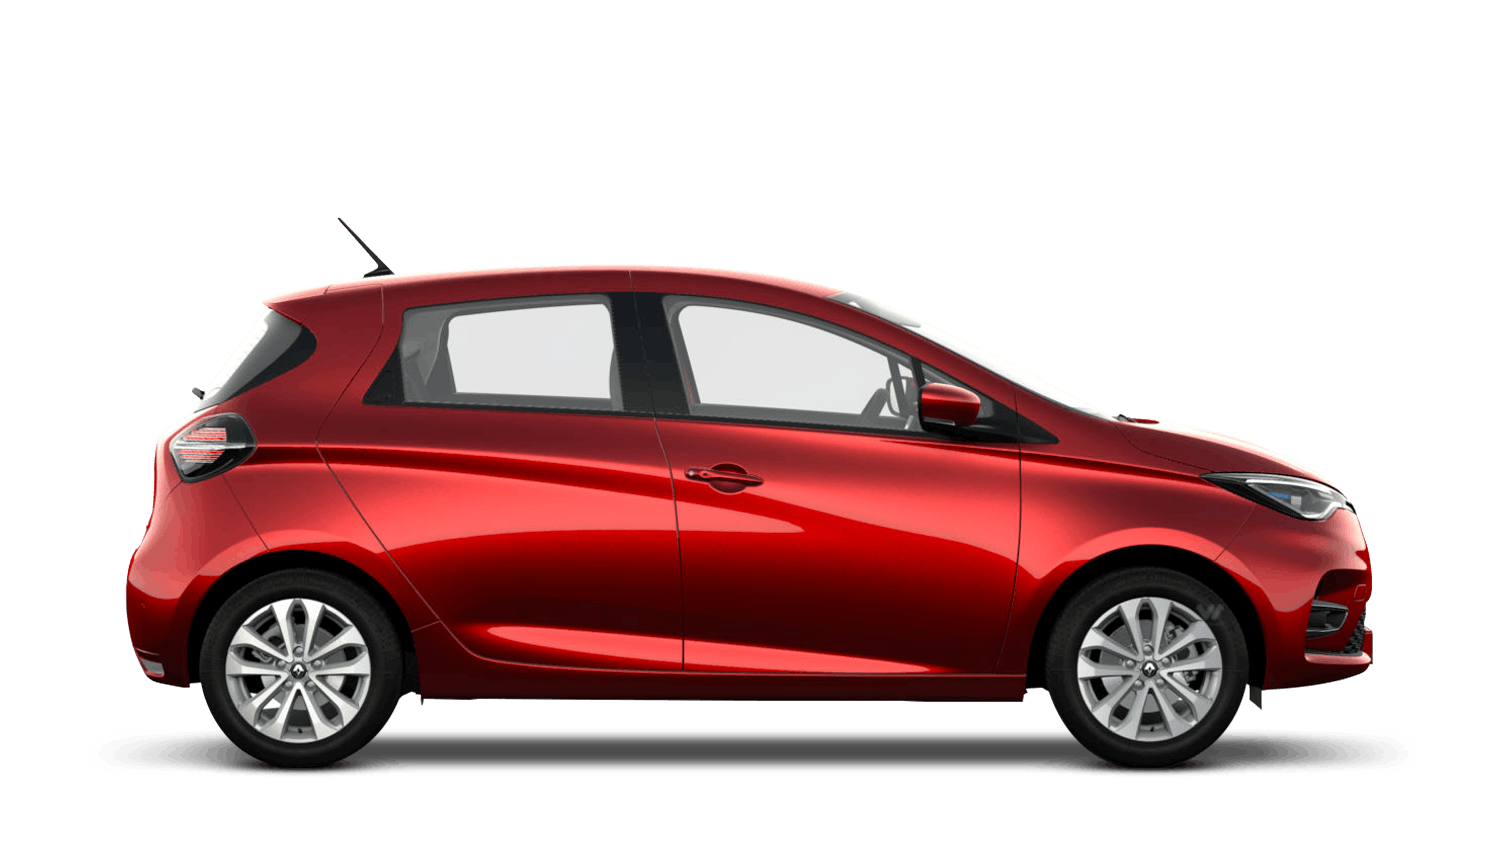 Flame Red Renault ZOE